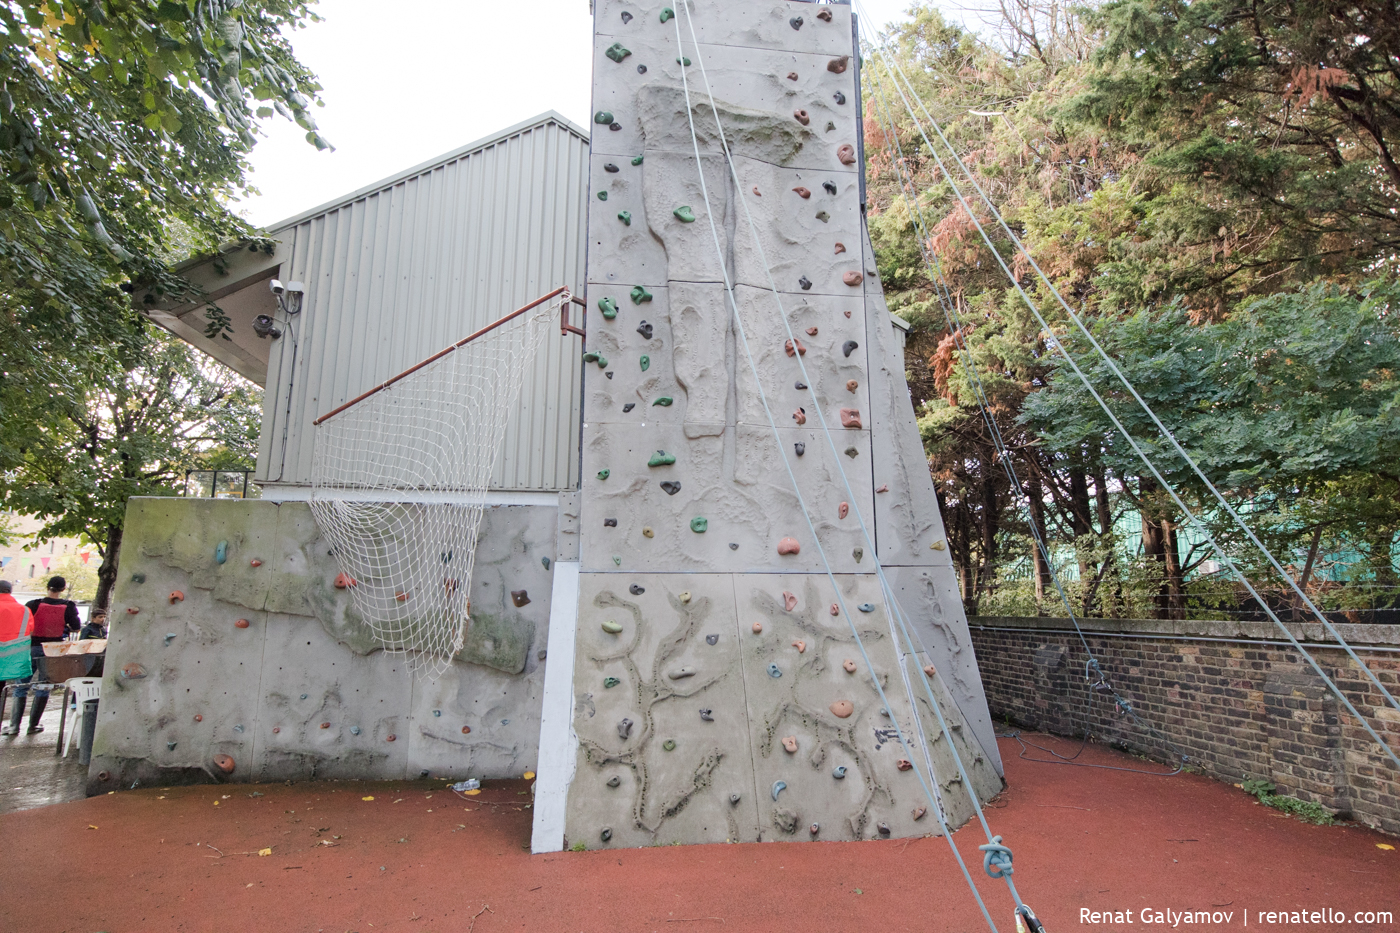 Climbing wall at Shadwell Basin Outdoor Activity Centre